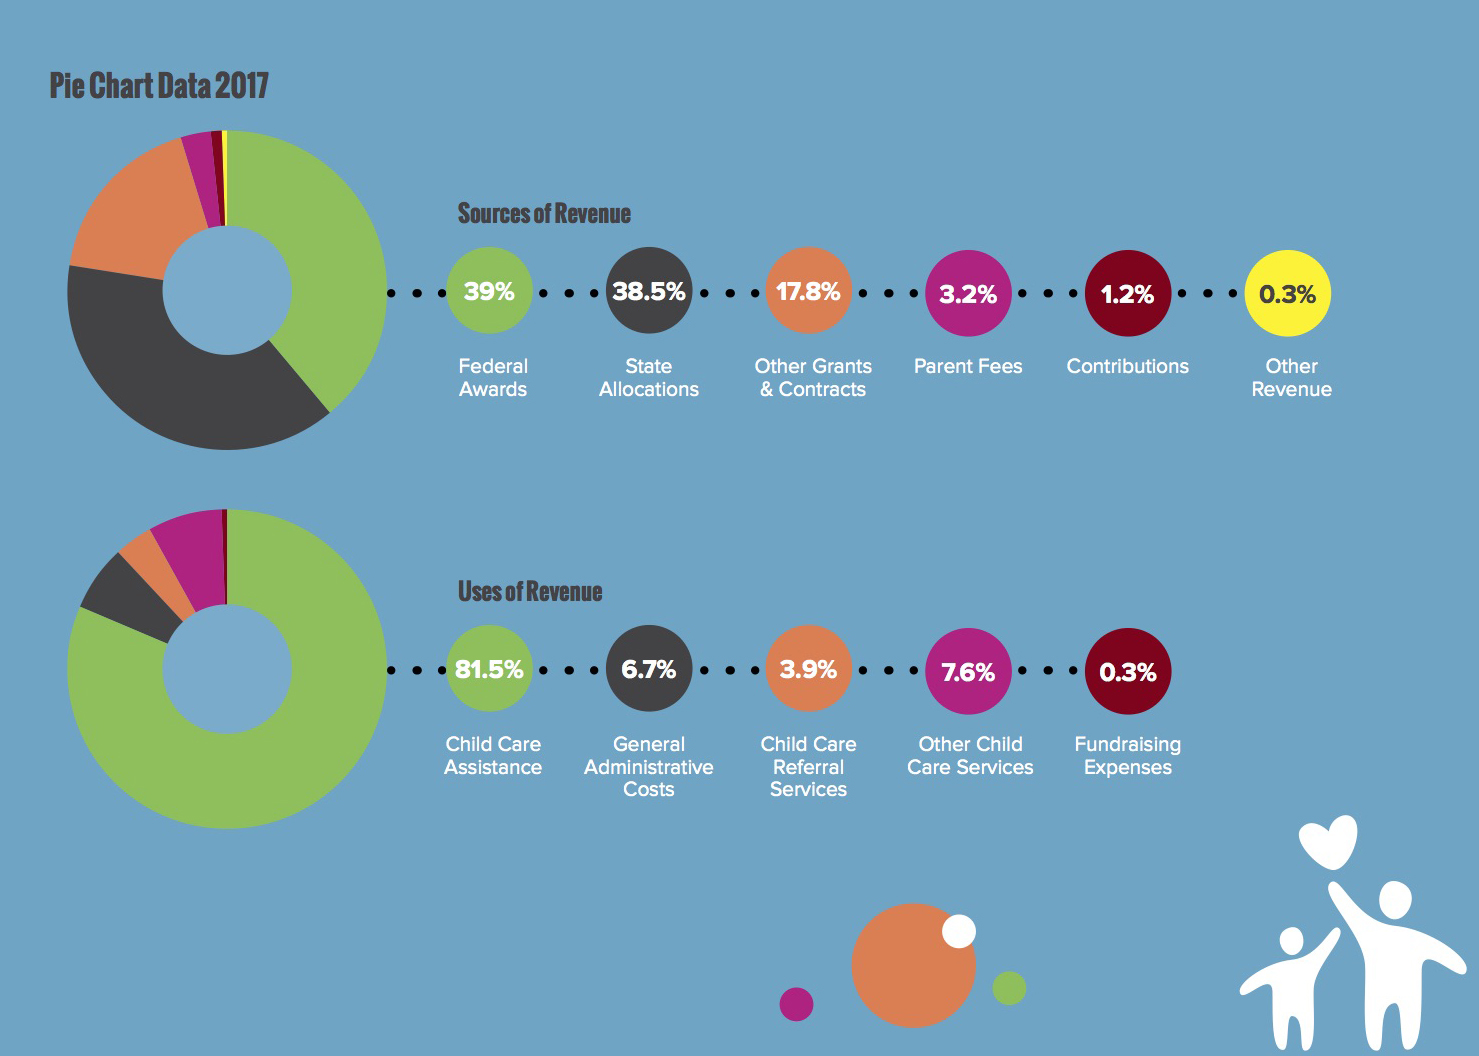 Financials Uses of Revenue Pie Chart 2013